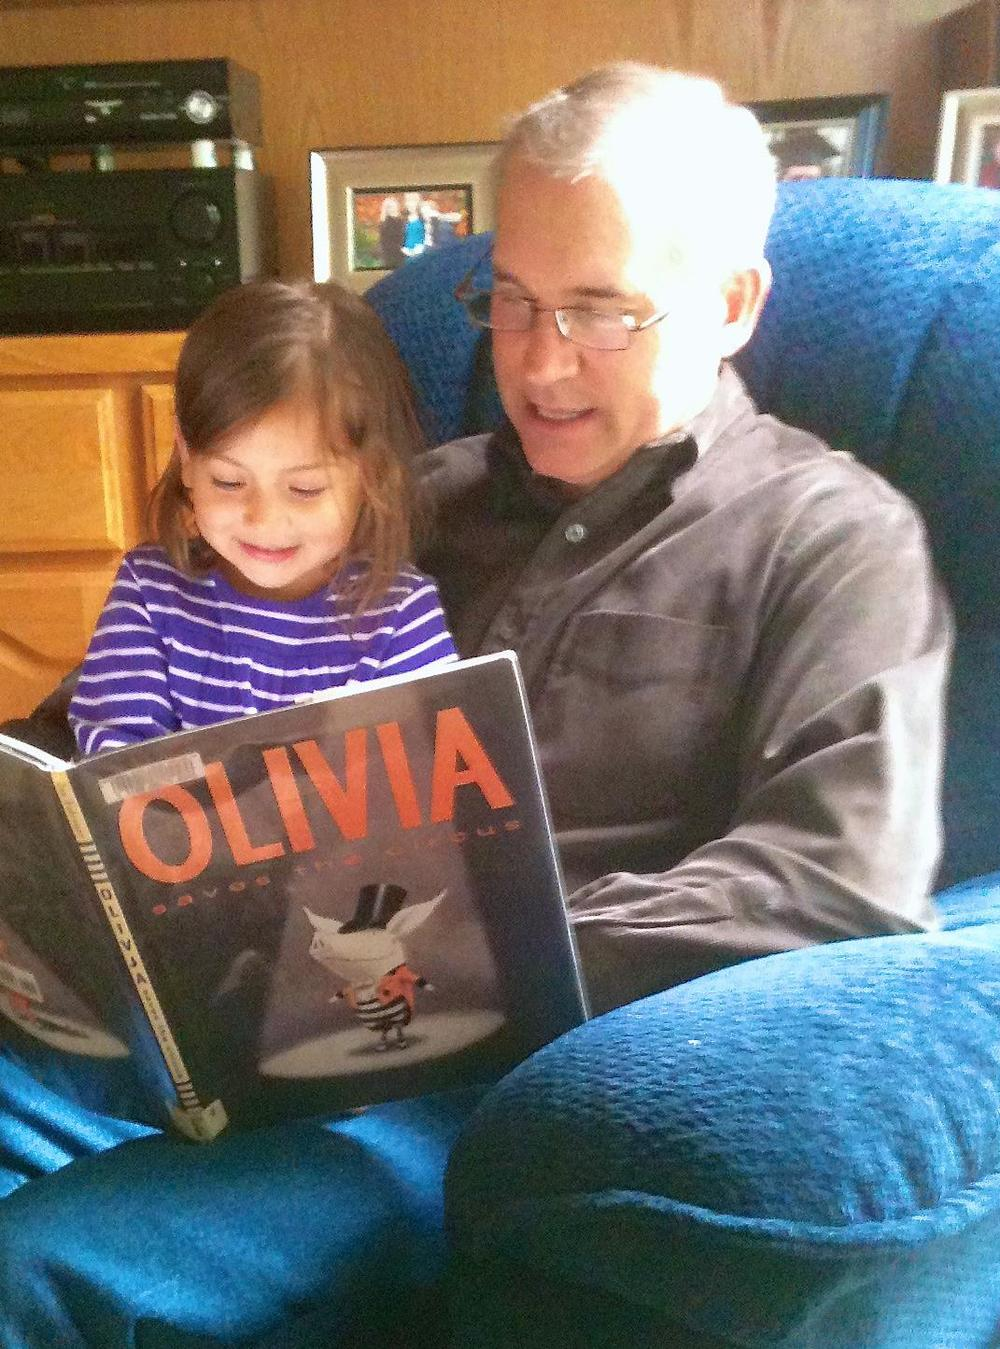 Grandpa granddaughter reading together.jpg